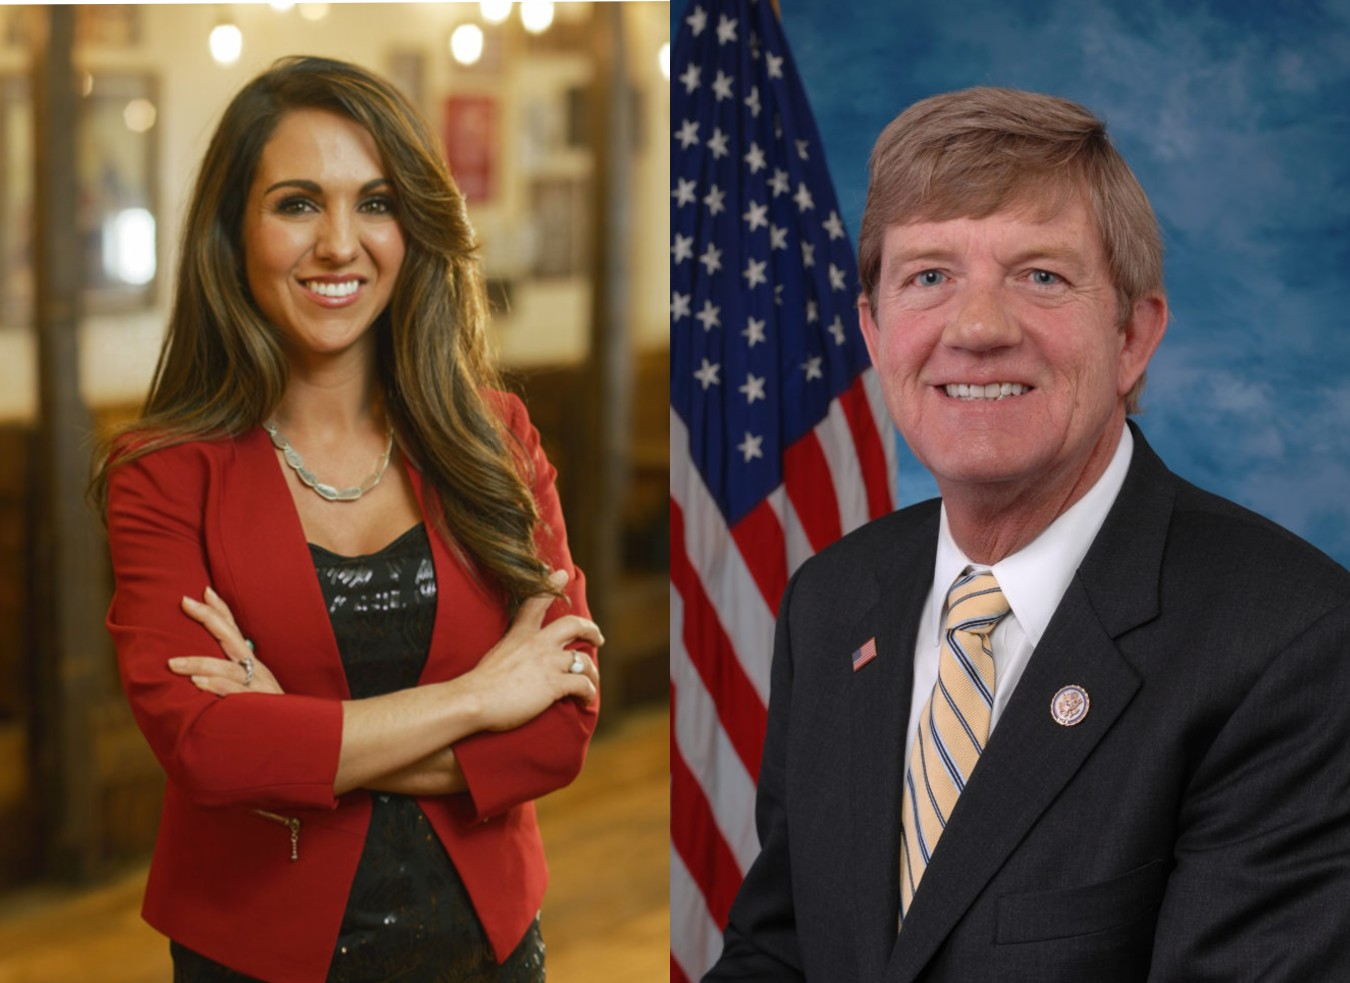 Lauren Boebert and Scott Tipton are both vying for the Republican nomination for the 3rd congressional district.